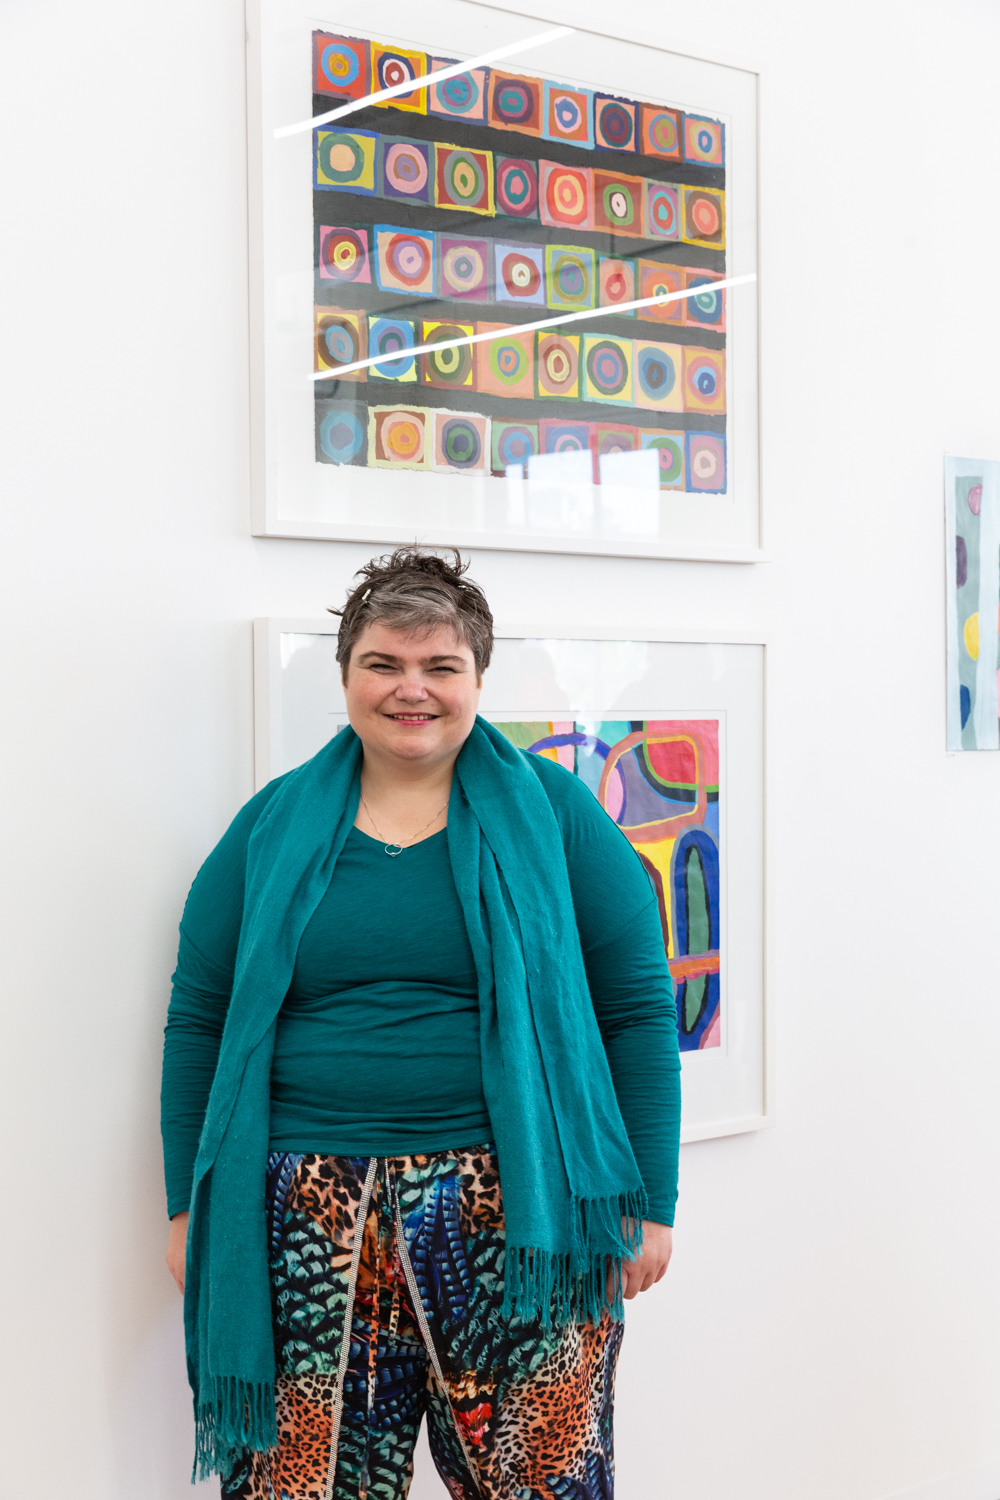 Artist Monica Lazzari stands in front of her colourful artwork